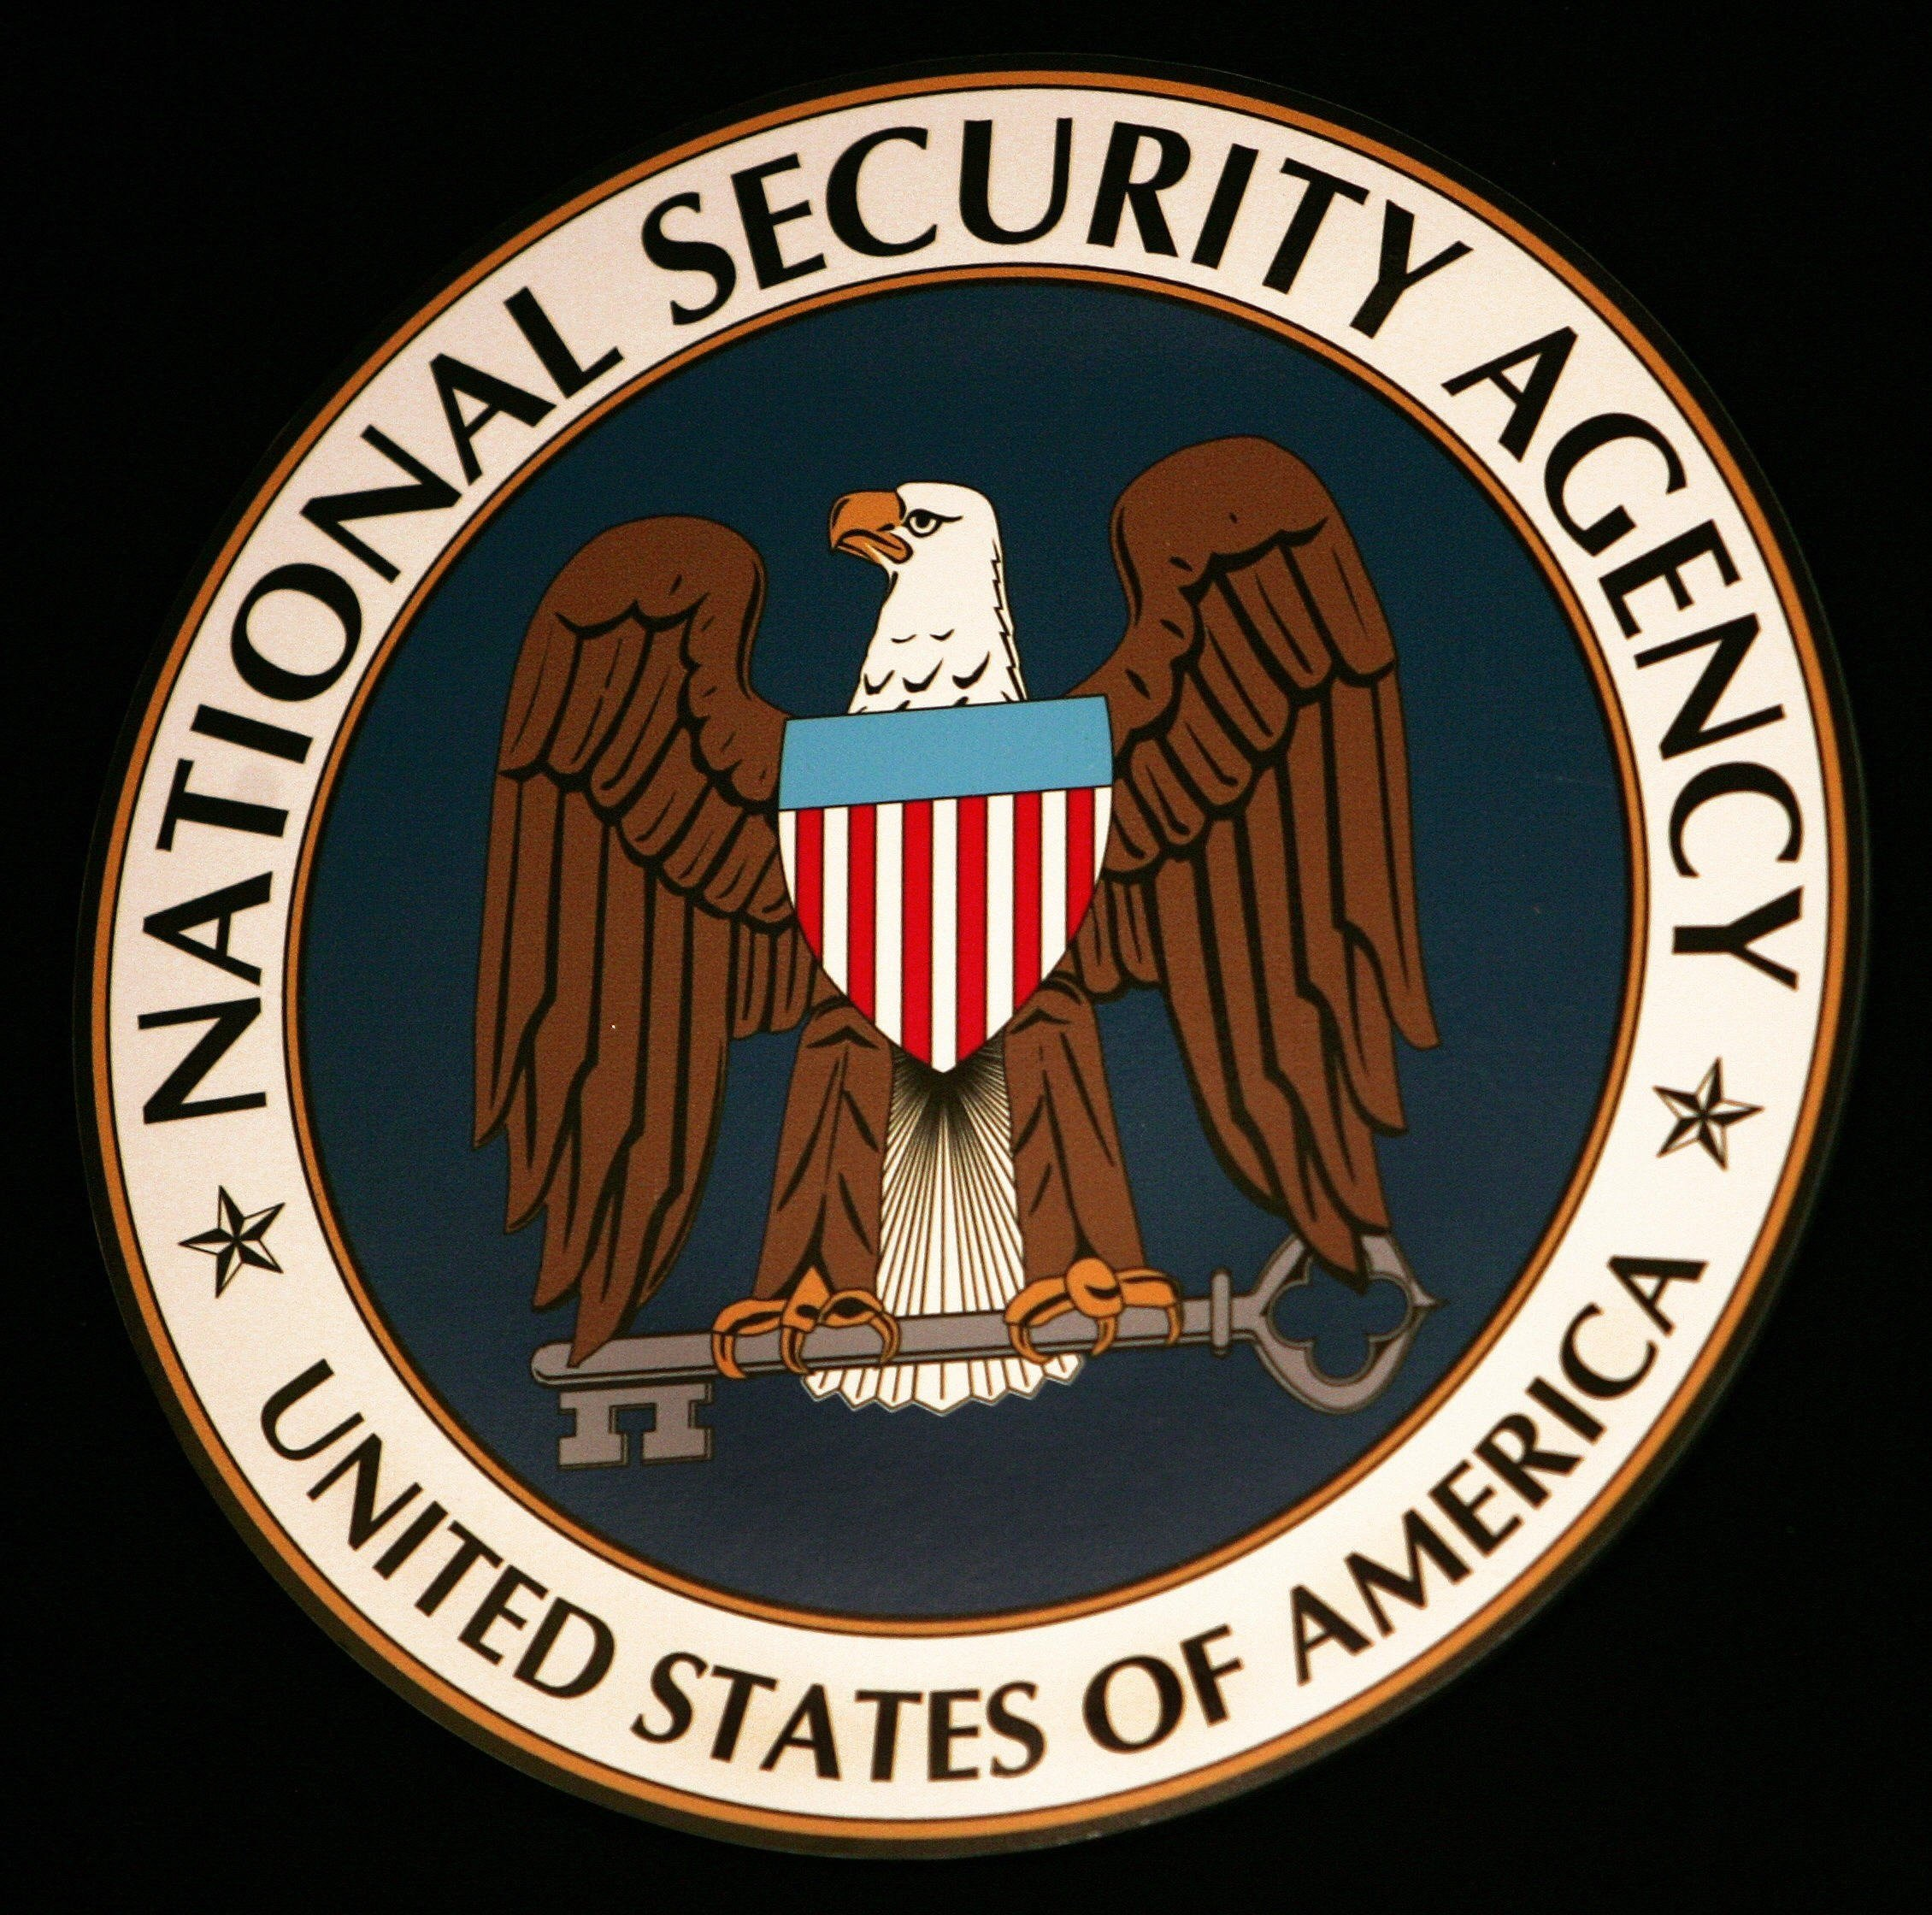 NSA staffer pleads guilty over taking home top secret files